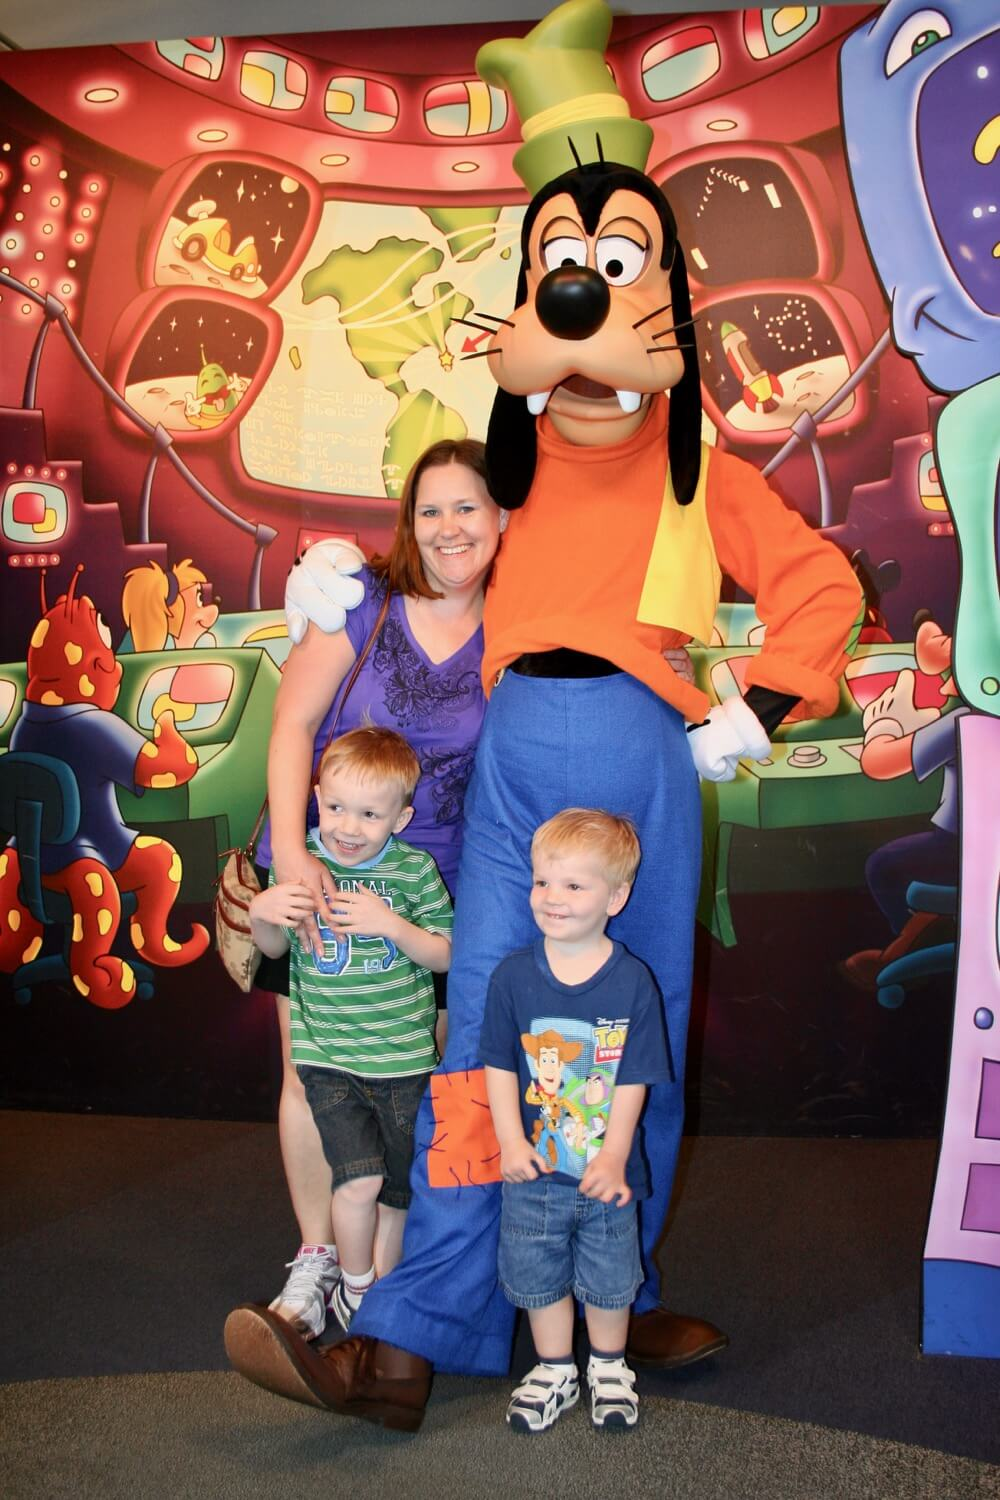 Terrific disney world character meeting tips disney world character meeting tips goofy meets a family m4hsunfo